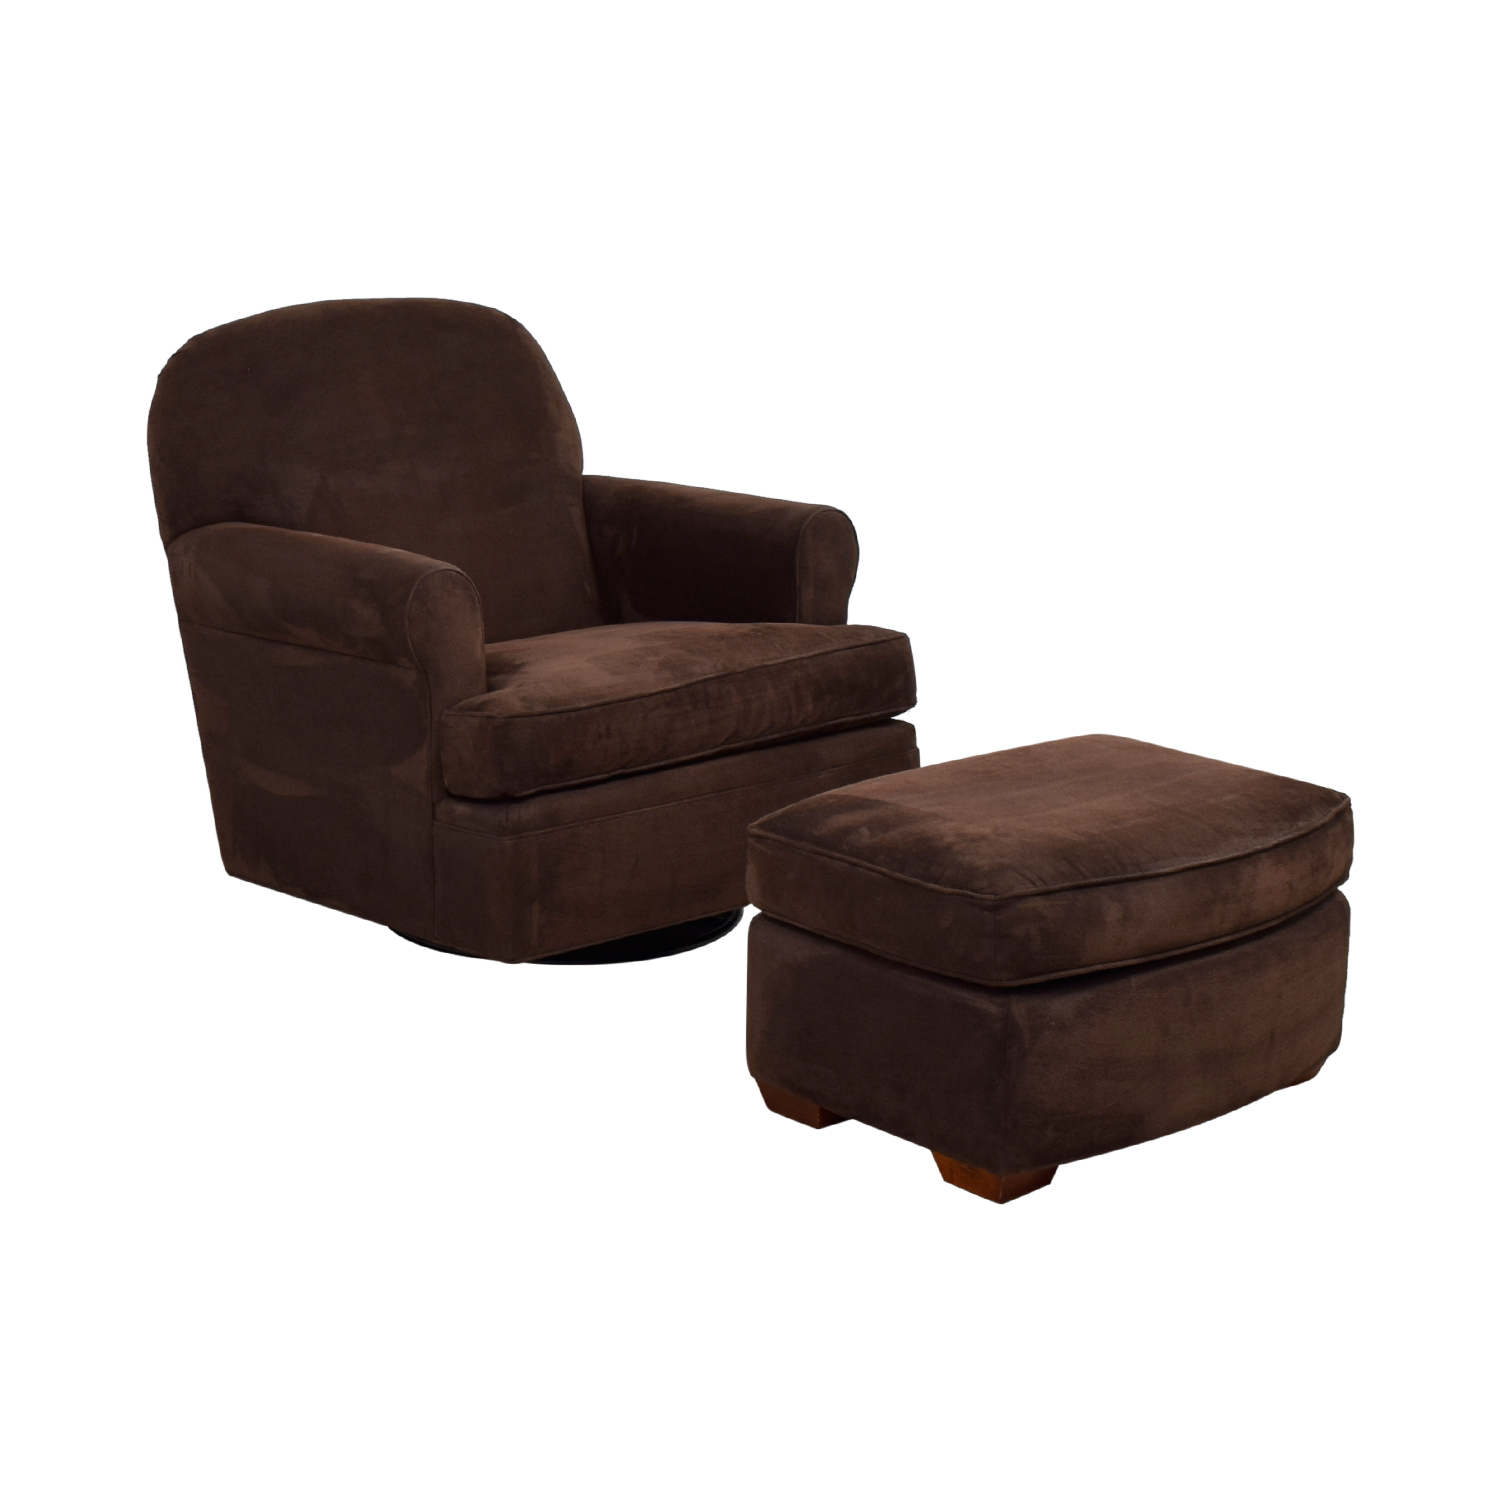 Admirable 90 Off Land Of Nod Land Of Nod Dylan Swivel Glider Chair And Ottoman Chairs Beatyapartments Chair Design Images Beatyapartmentscom